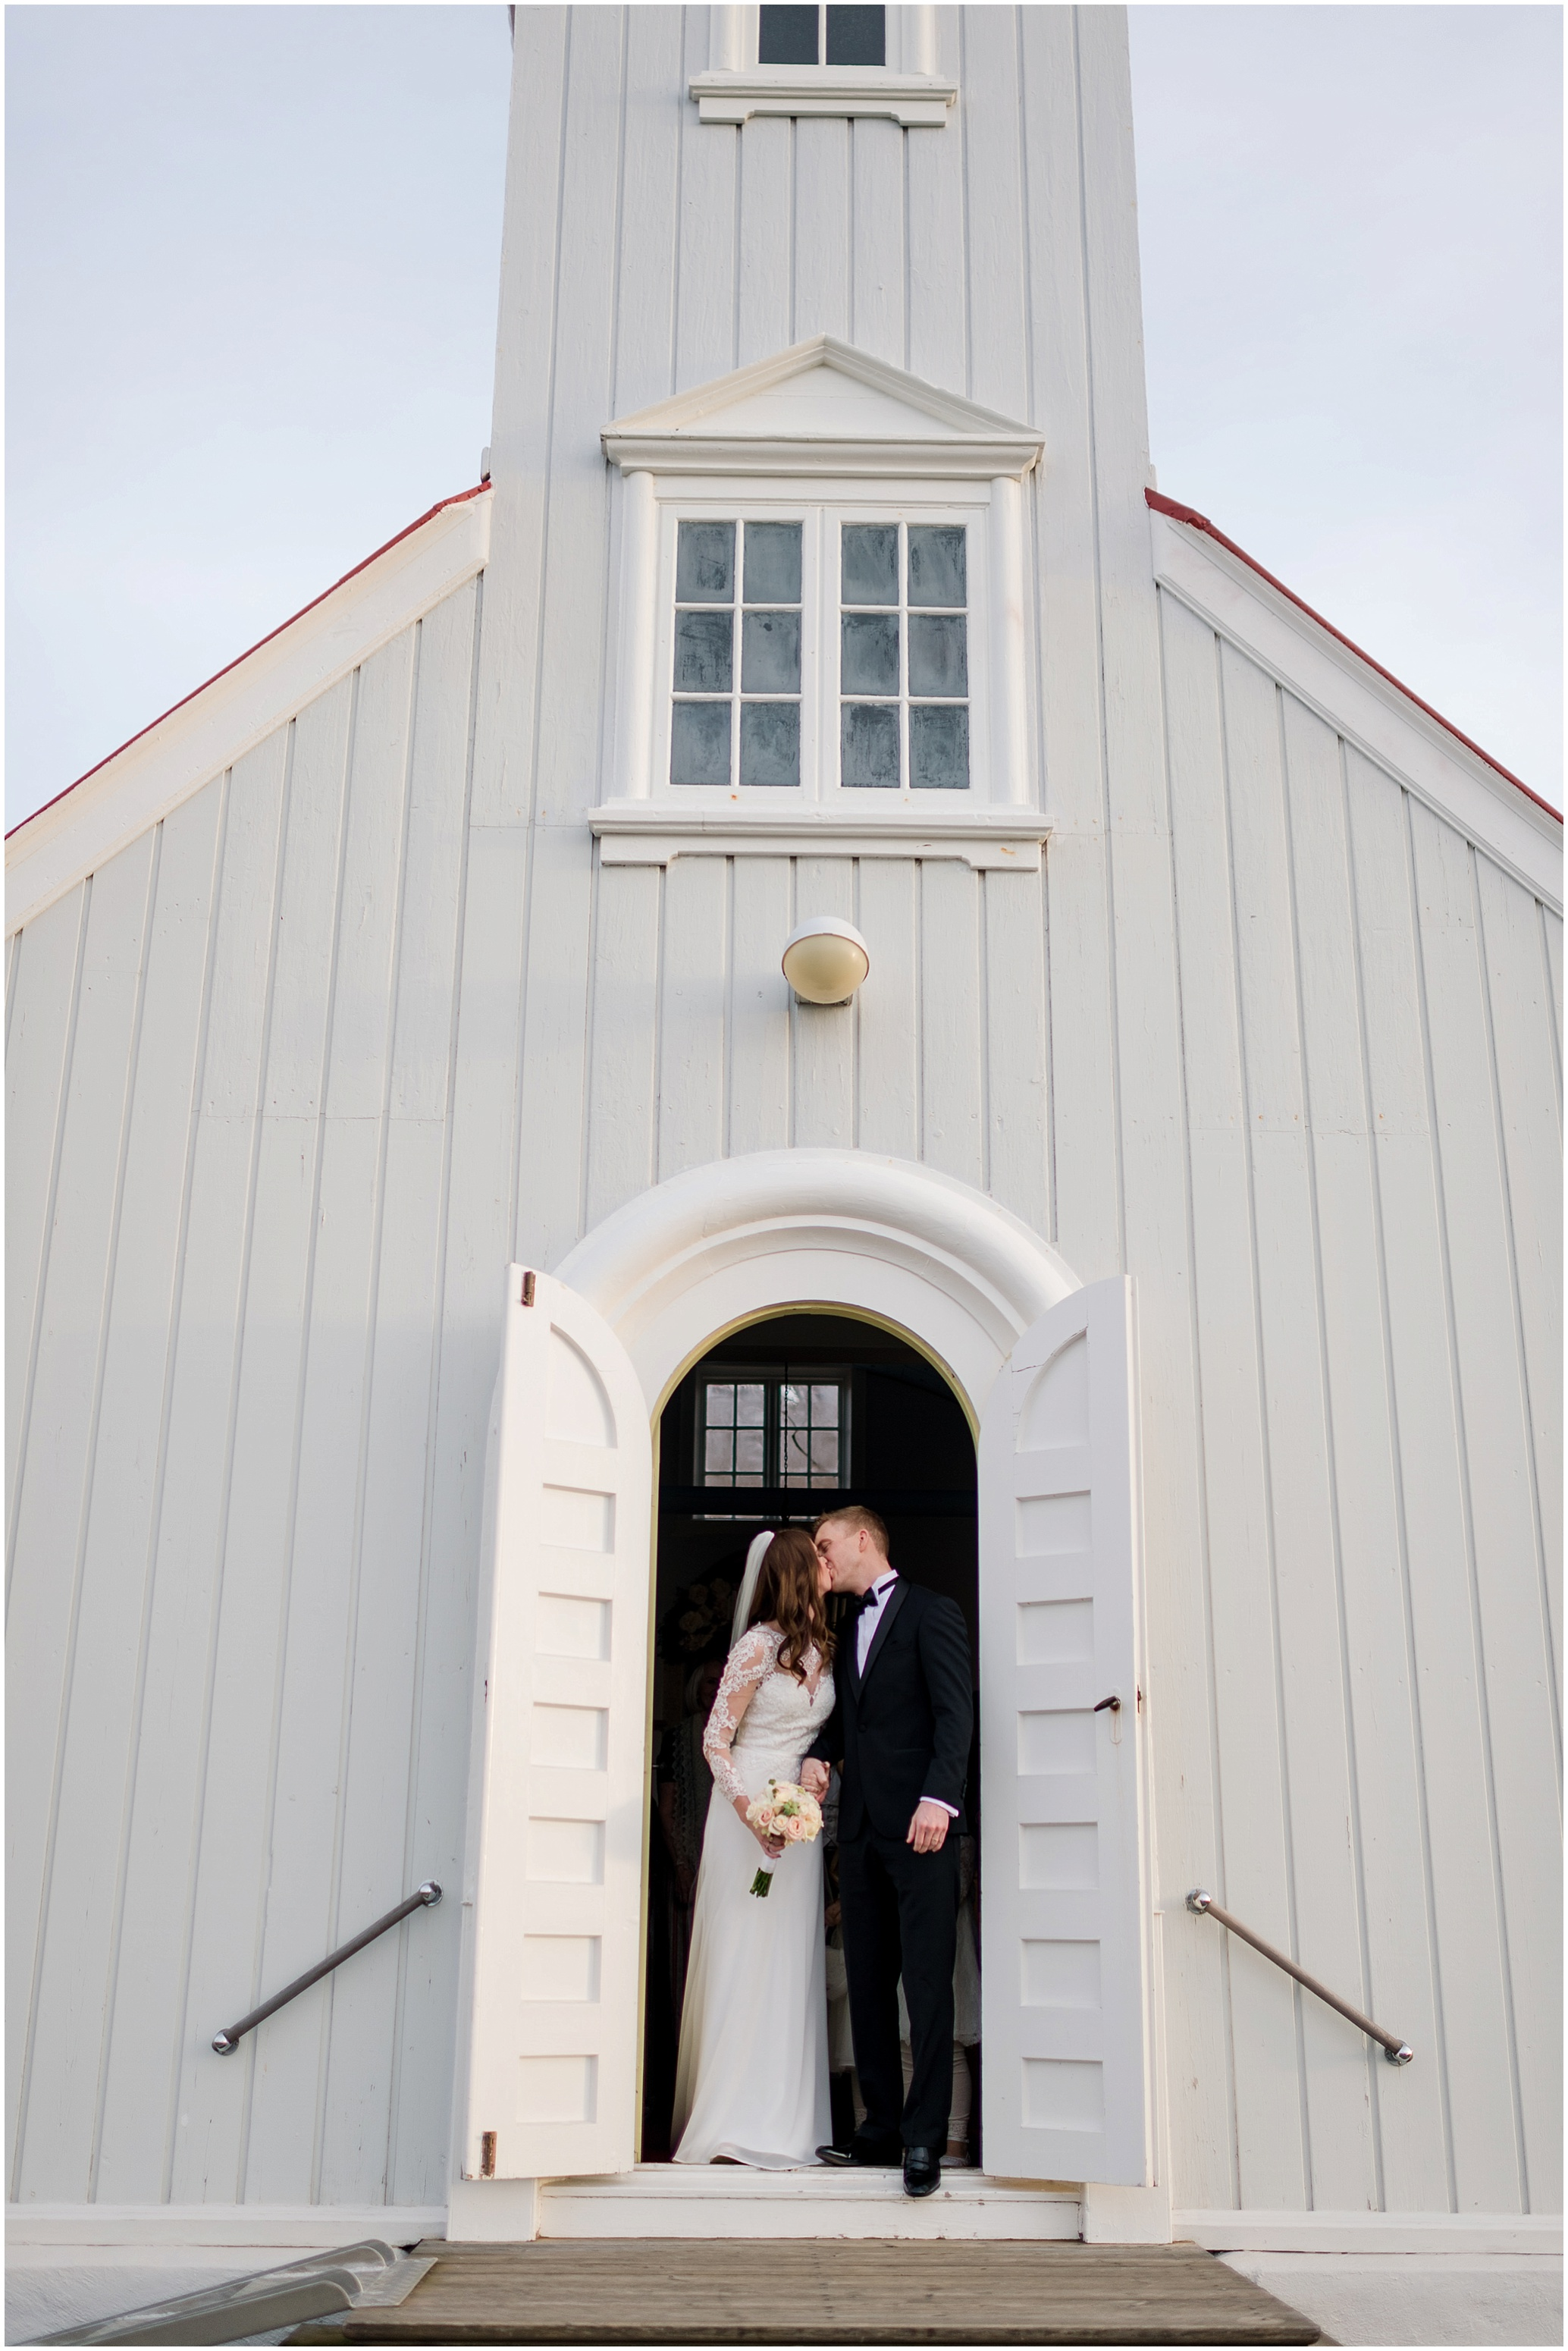 Hannah Leigh Photography Akureyri Iceland Wedding_3185.jpg